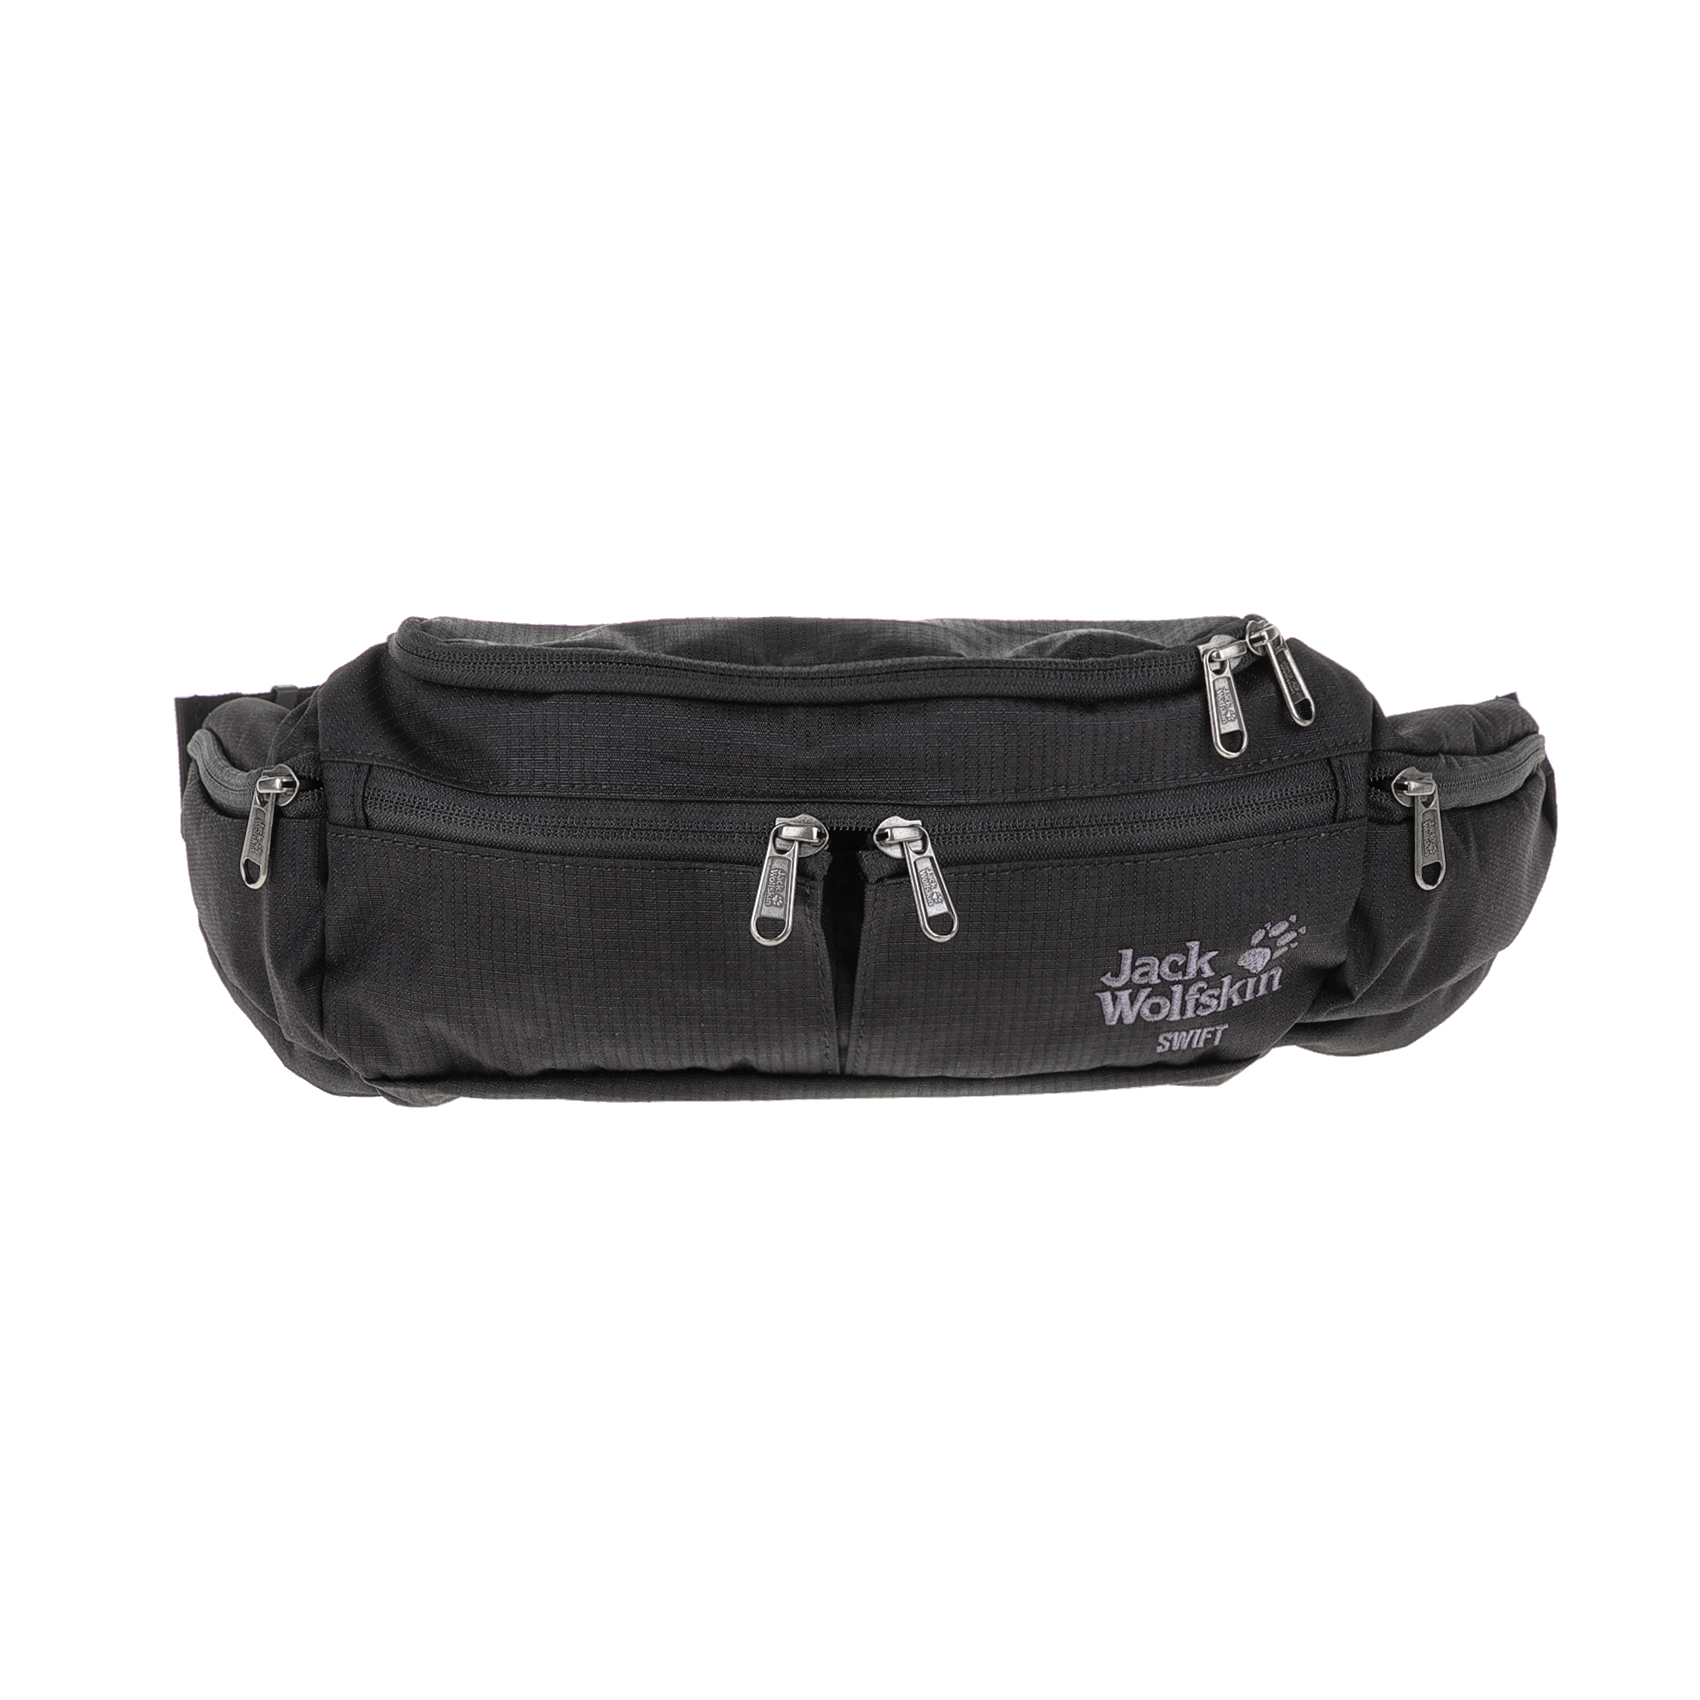 JACK WOLFSKIN – Τσαντάκι μέσης SWIFT FANNY PACK EQUIPMENT JACK WOLFSKIN μαύρο